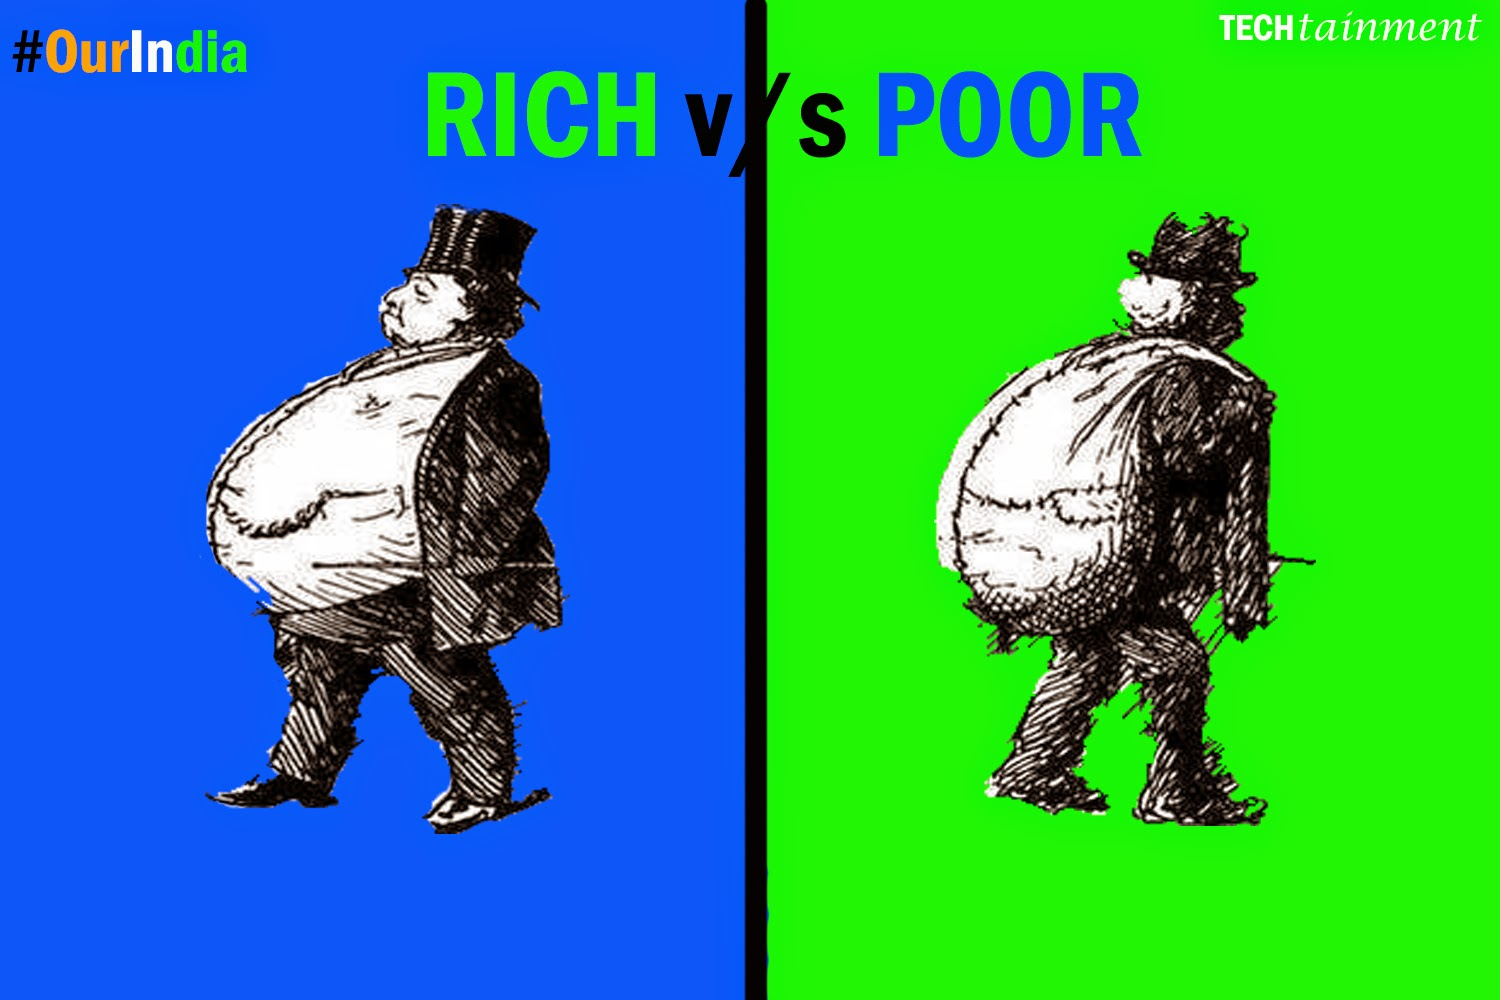 4 pictures to compare rich and poor in india techtainment